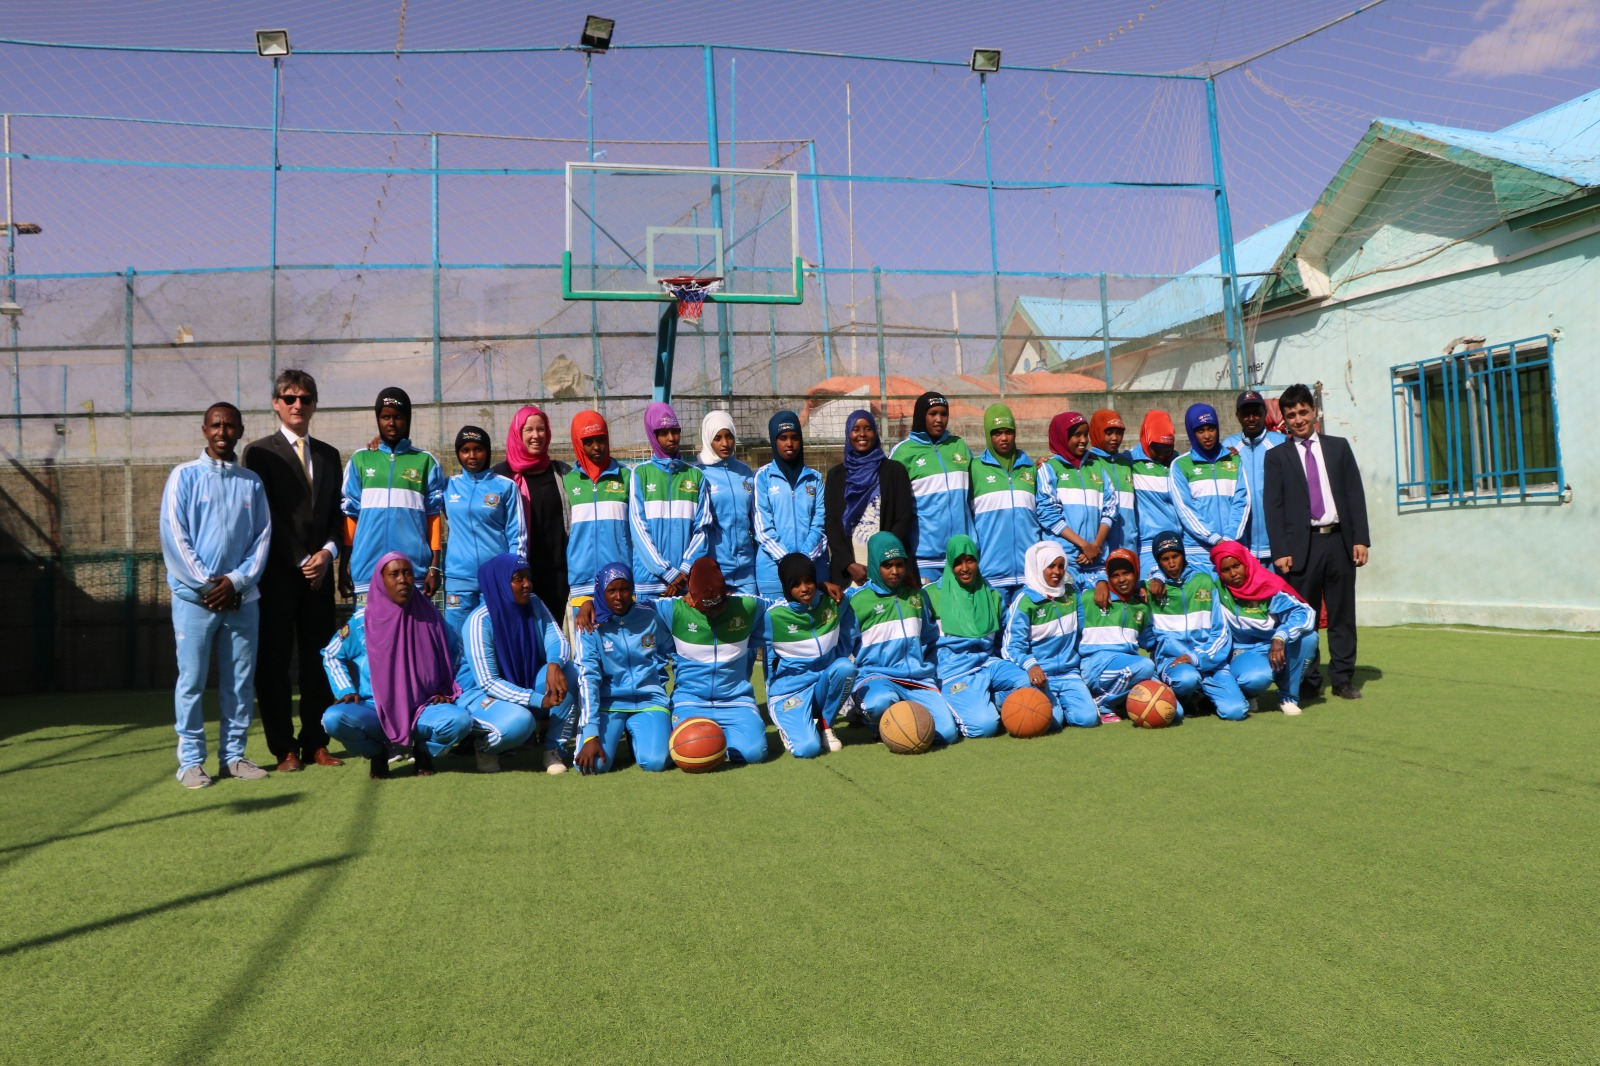 This girls basketball team wants to end female genital mutilation in Somalia – NowThis Her (image)